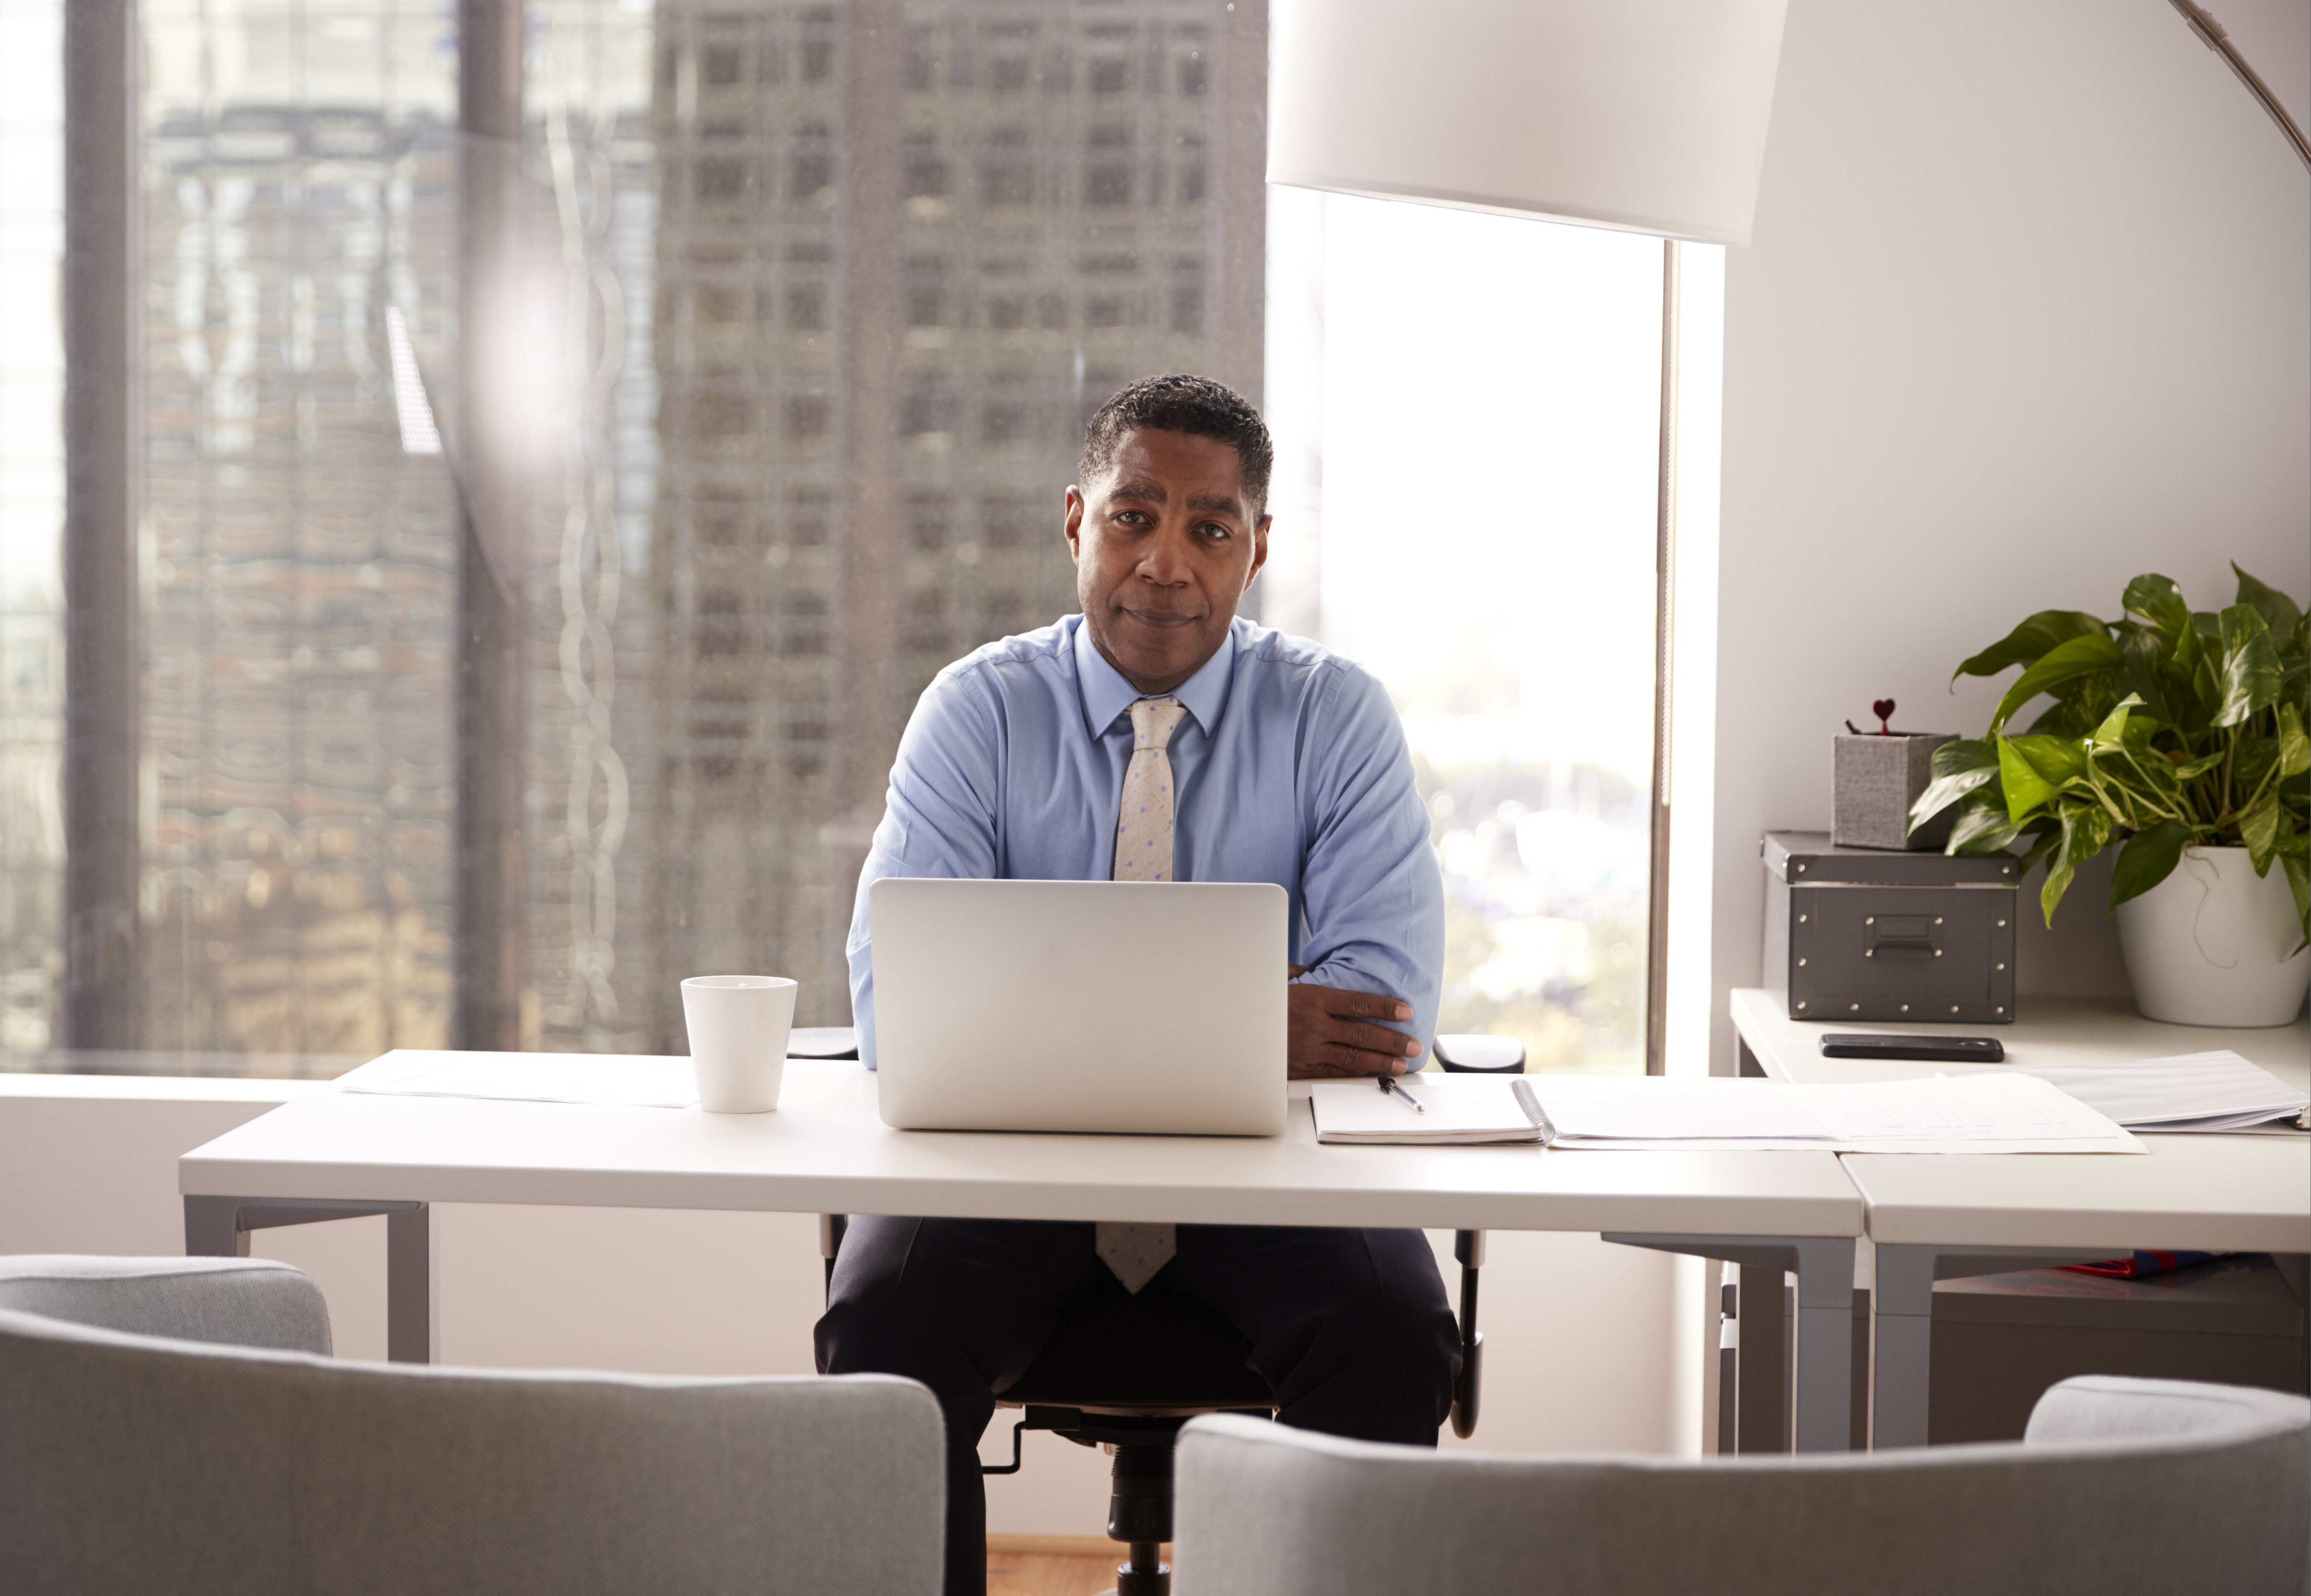 Portrait Of Male Financial Advisor In Modern Office Sitting At Desk Working On Laptop - Tributus